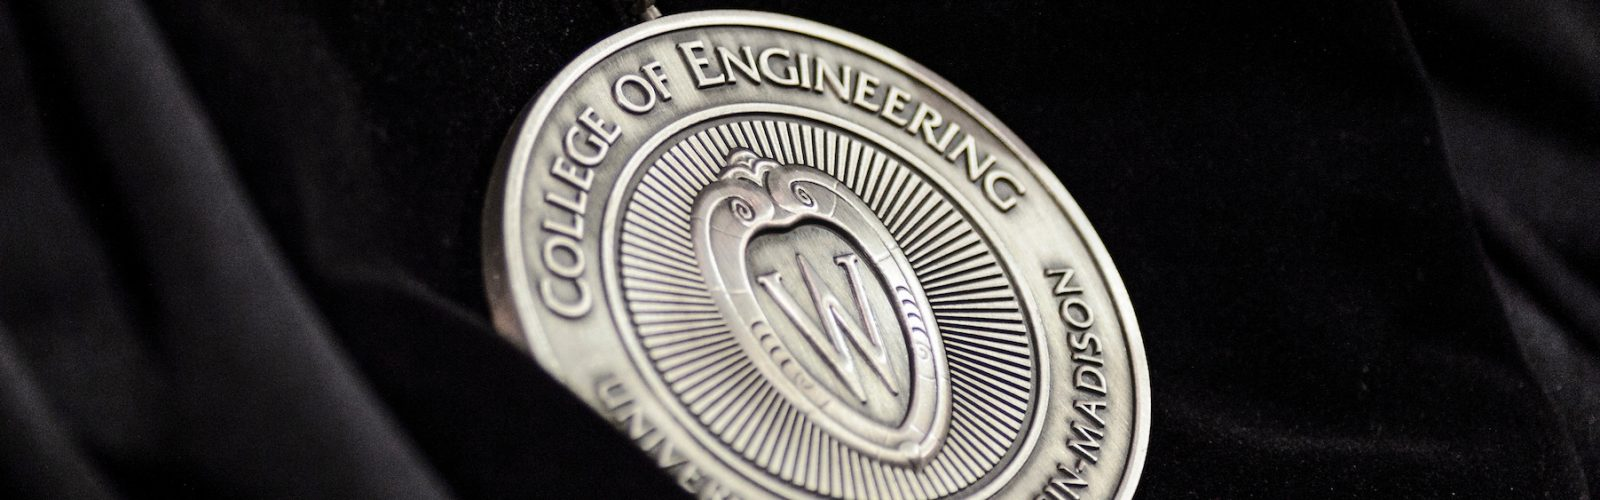 Photo of engineering medallion